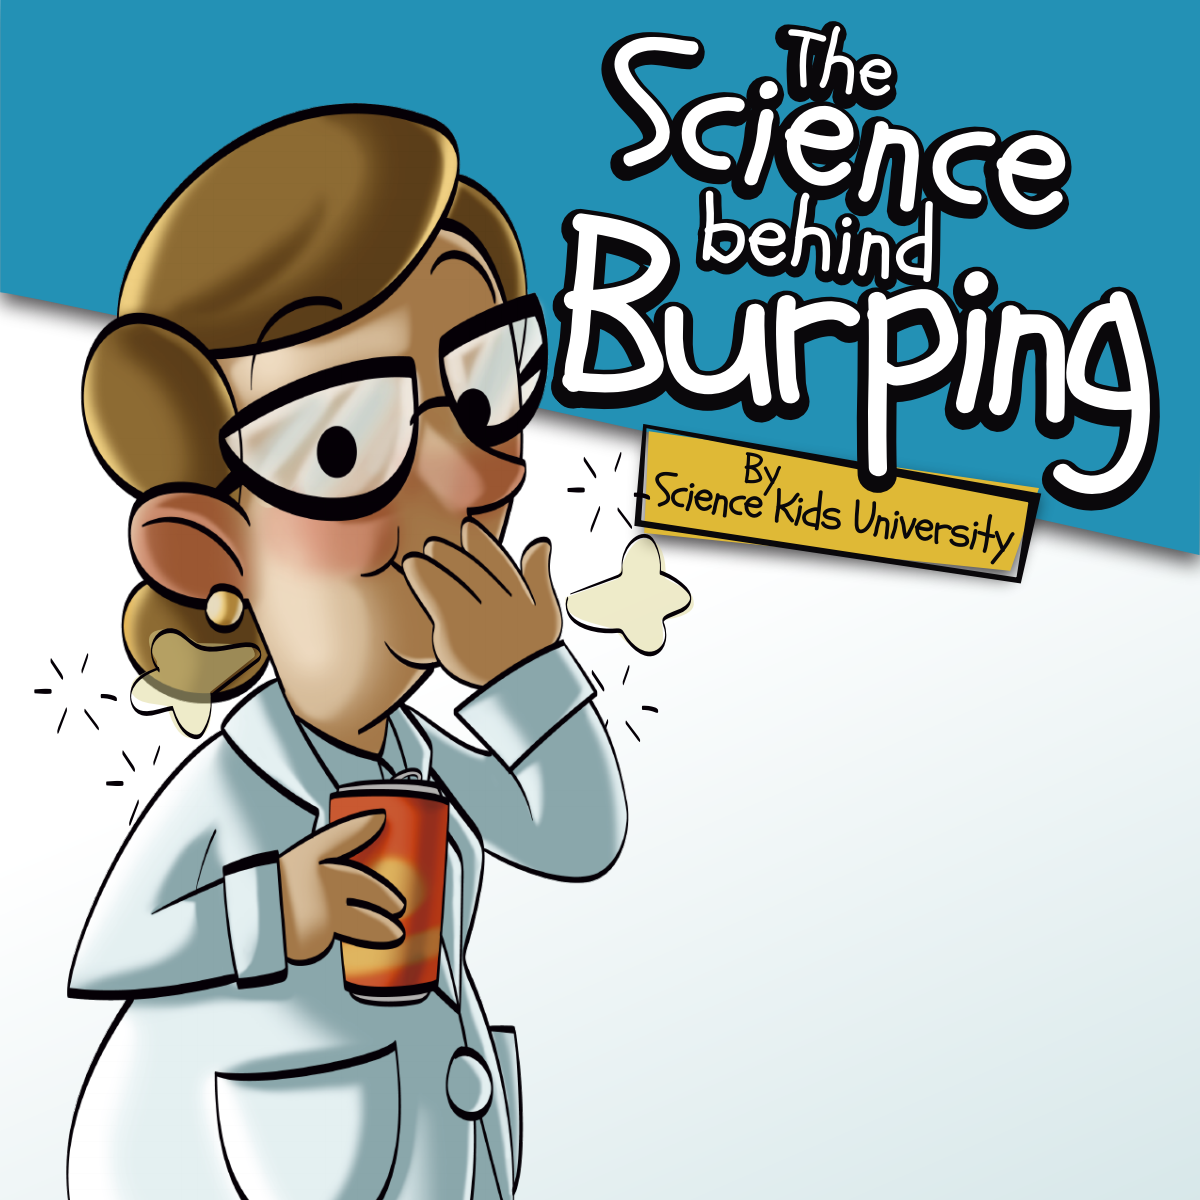 The Science Behind Burping